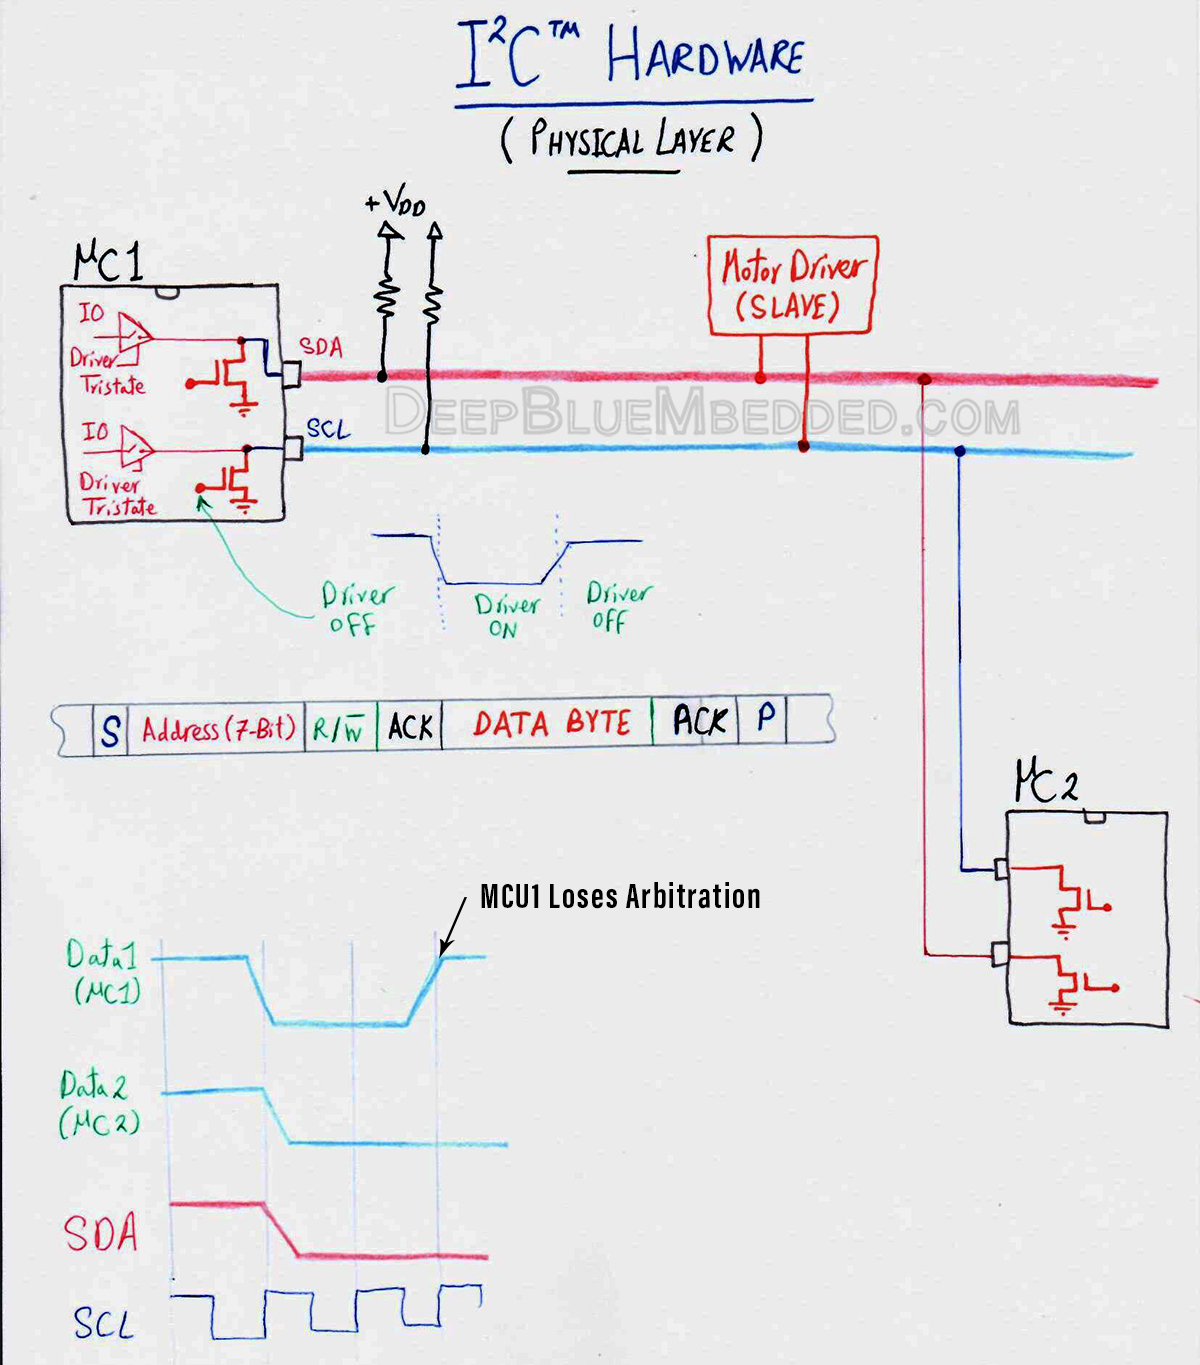 I2C Bus Hardware - Physical Layer Demo